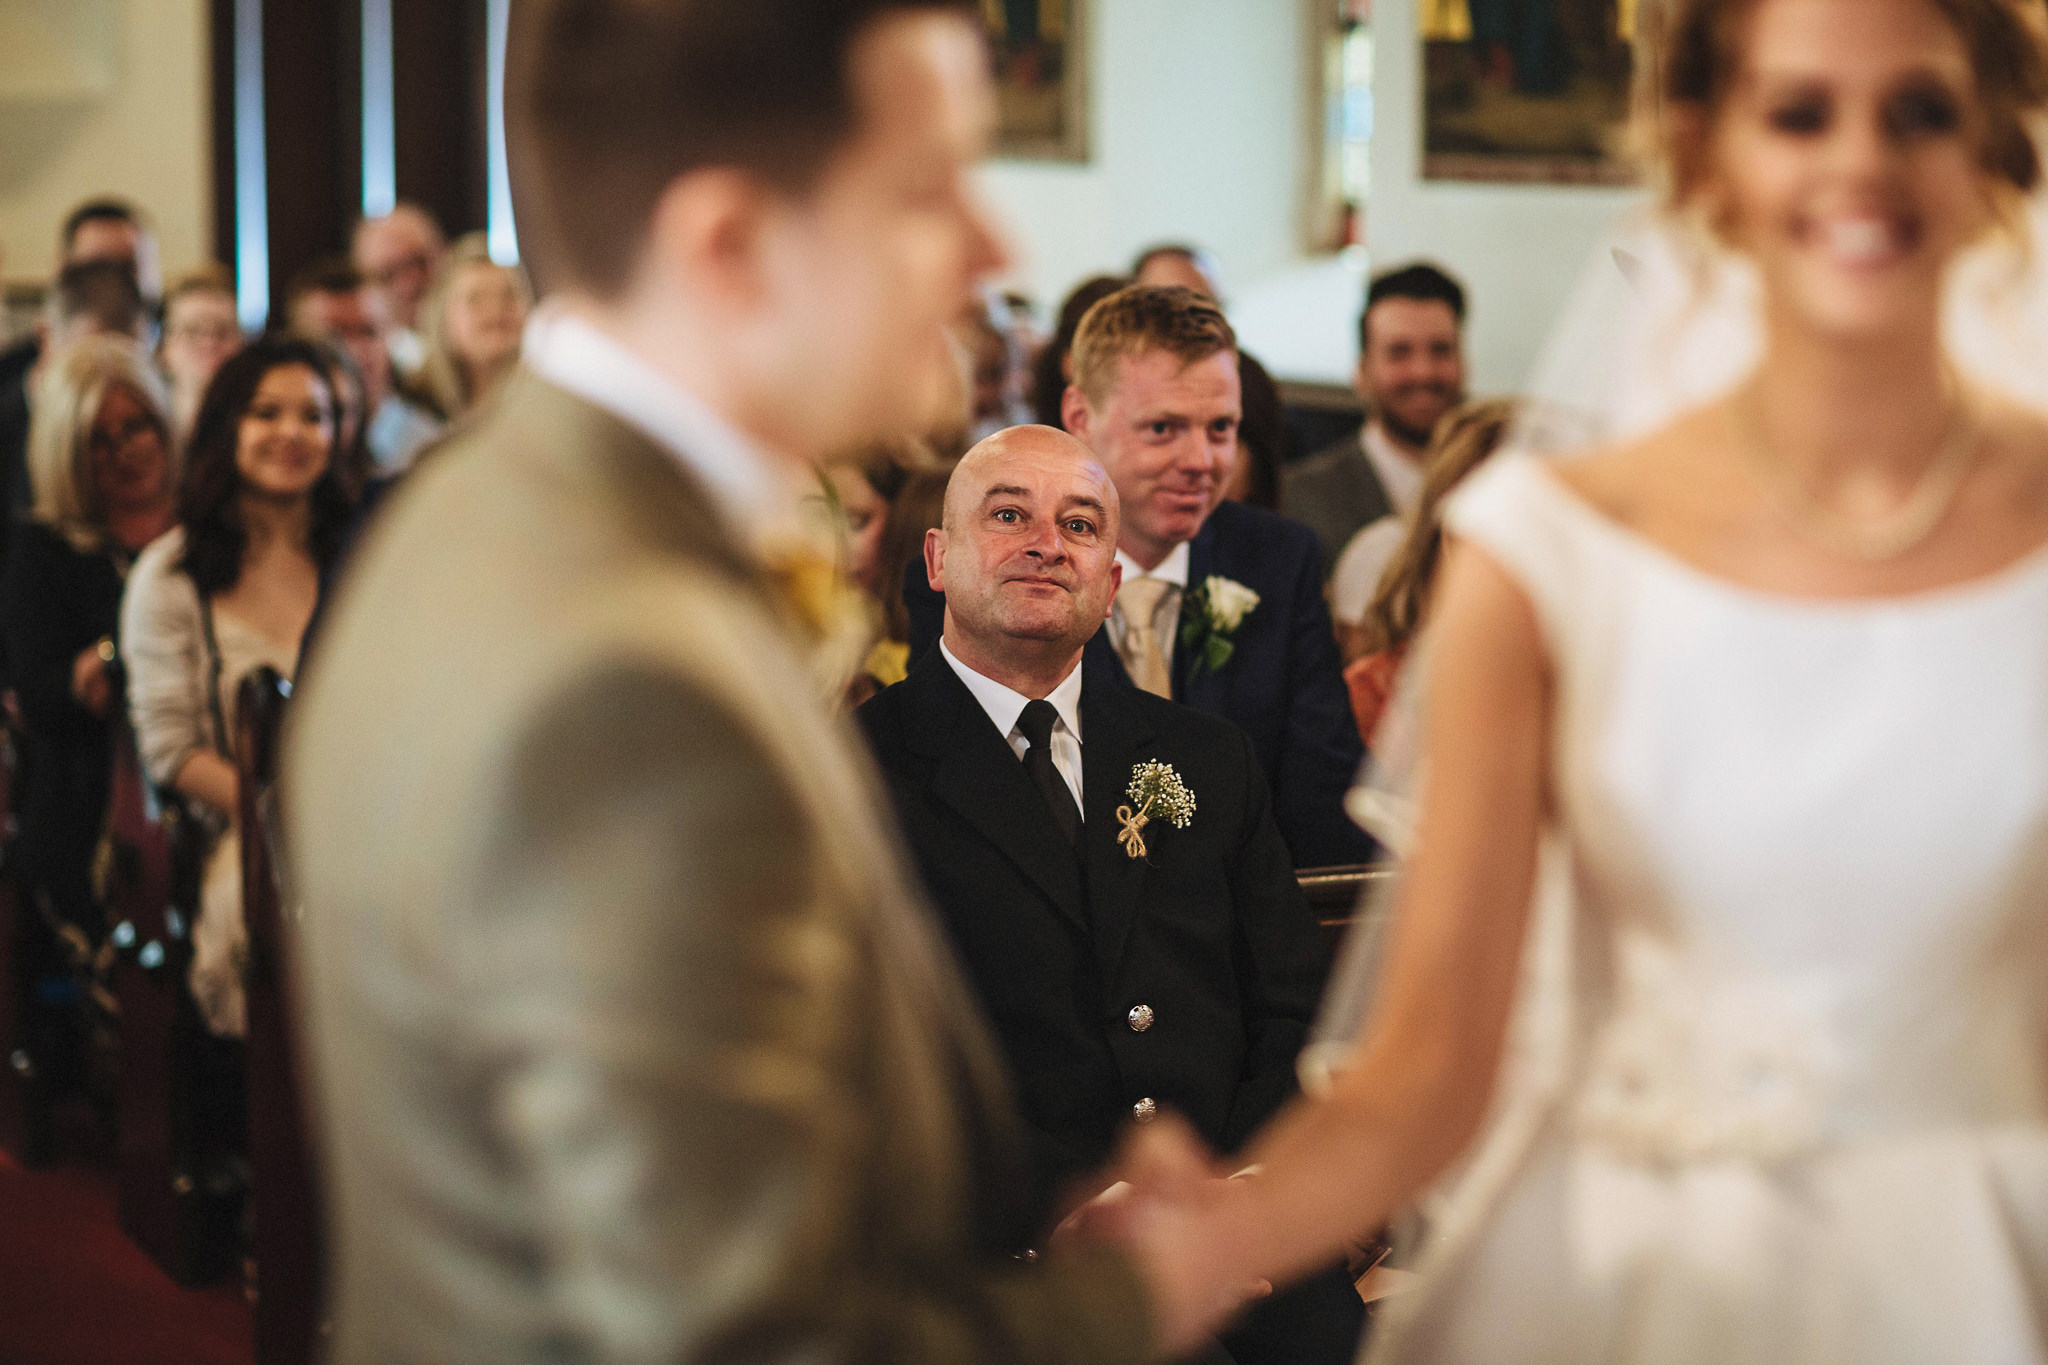 paul-marbrook-best-wedding-photographer-north-wales-151069